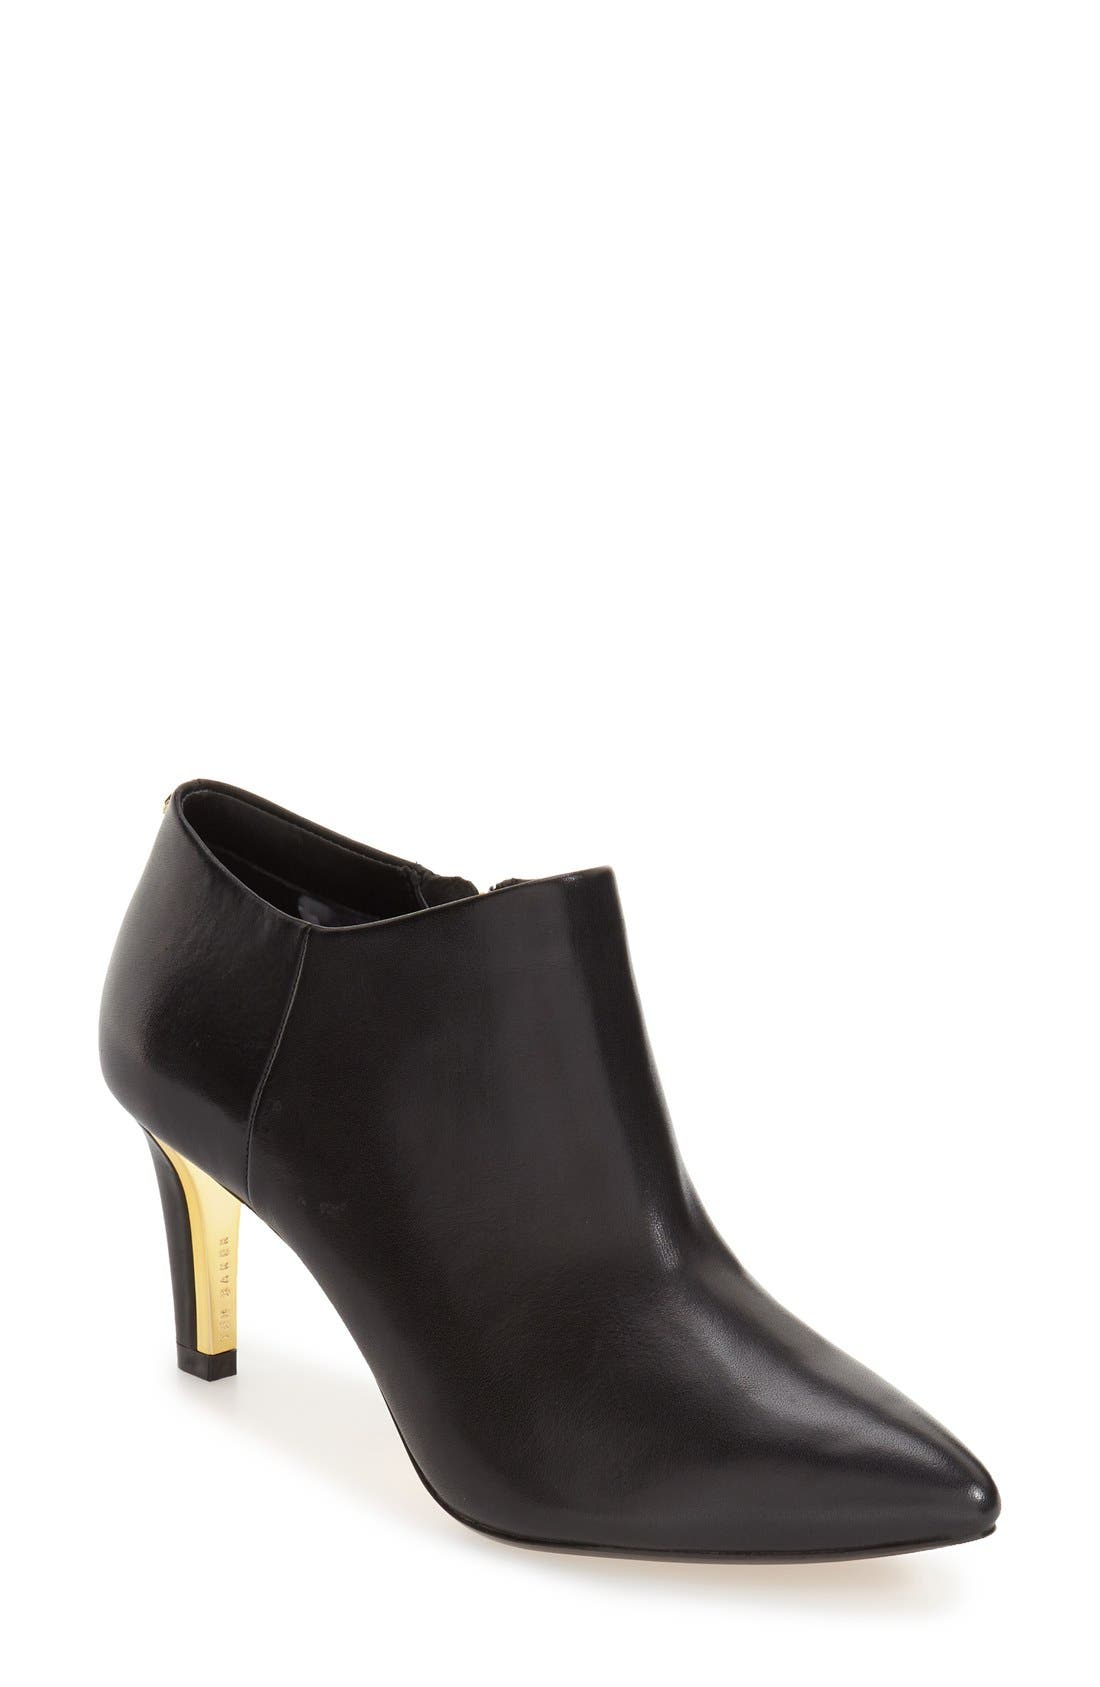 Alternate Image 1 Selected - Ted Baker London 'Nyiri' Pointy Toe Bootie (Women)